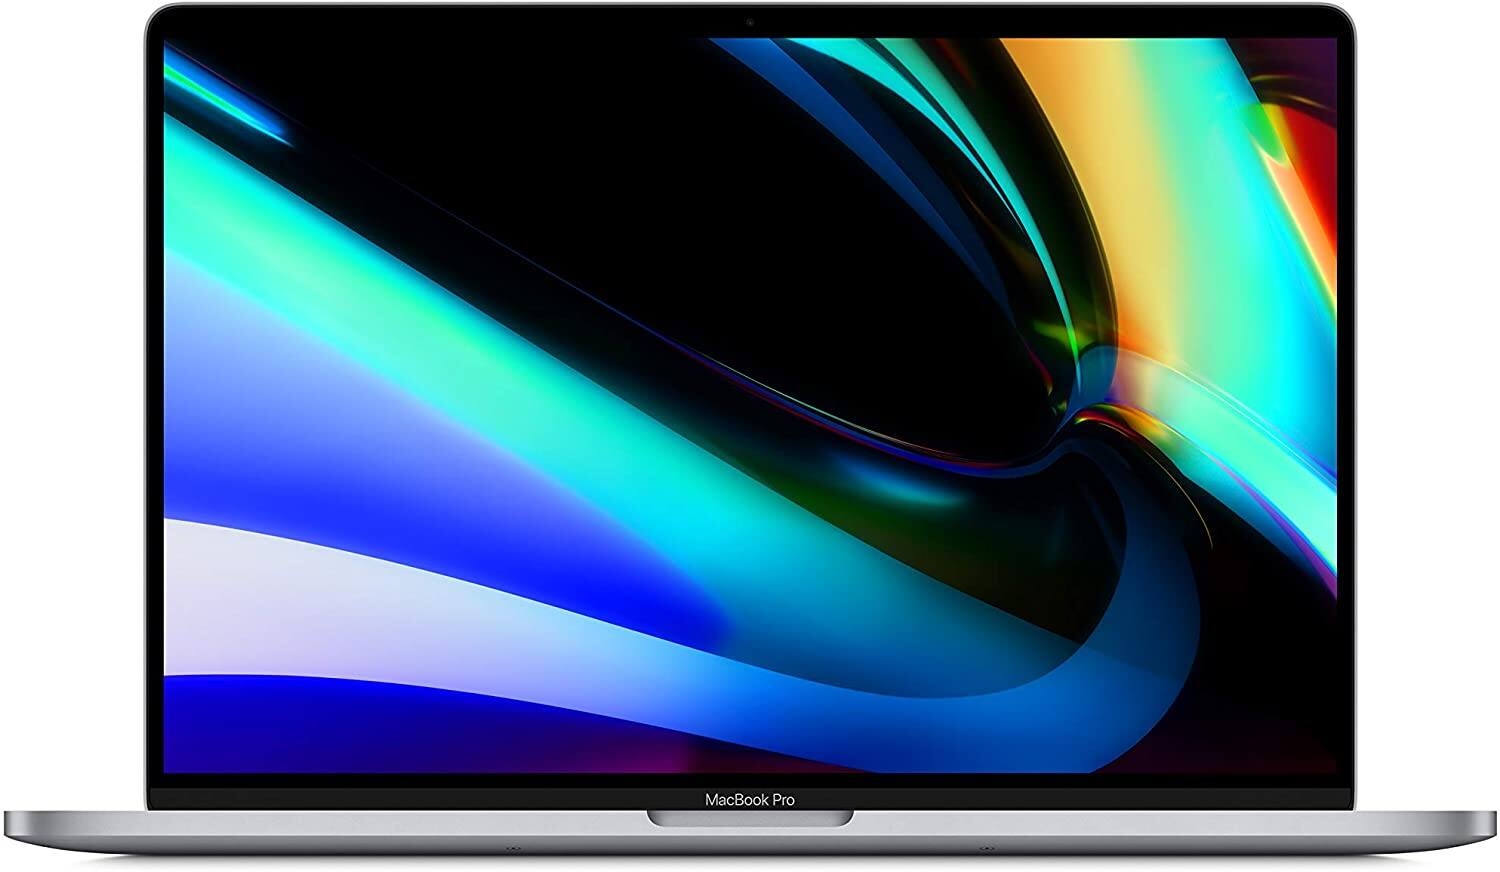 Apple MacBook Pro (16-Inch, 16GB RAM, 1TB Storage, 2.3GHz Intel Core i9) - Space Gray $2499